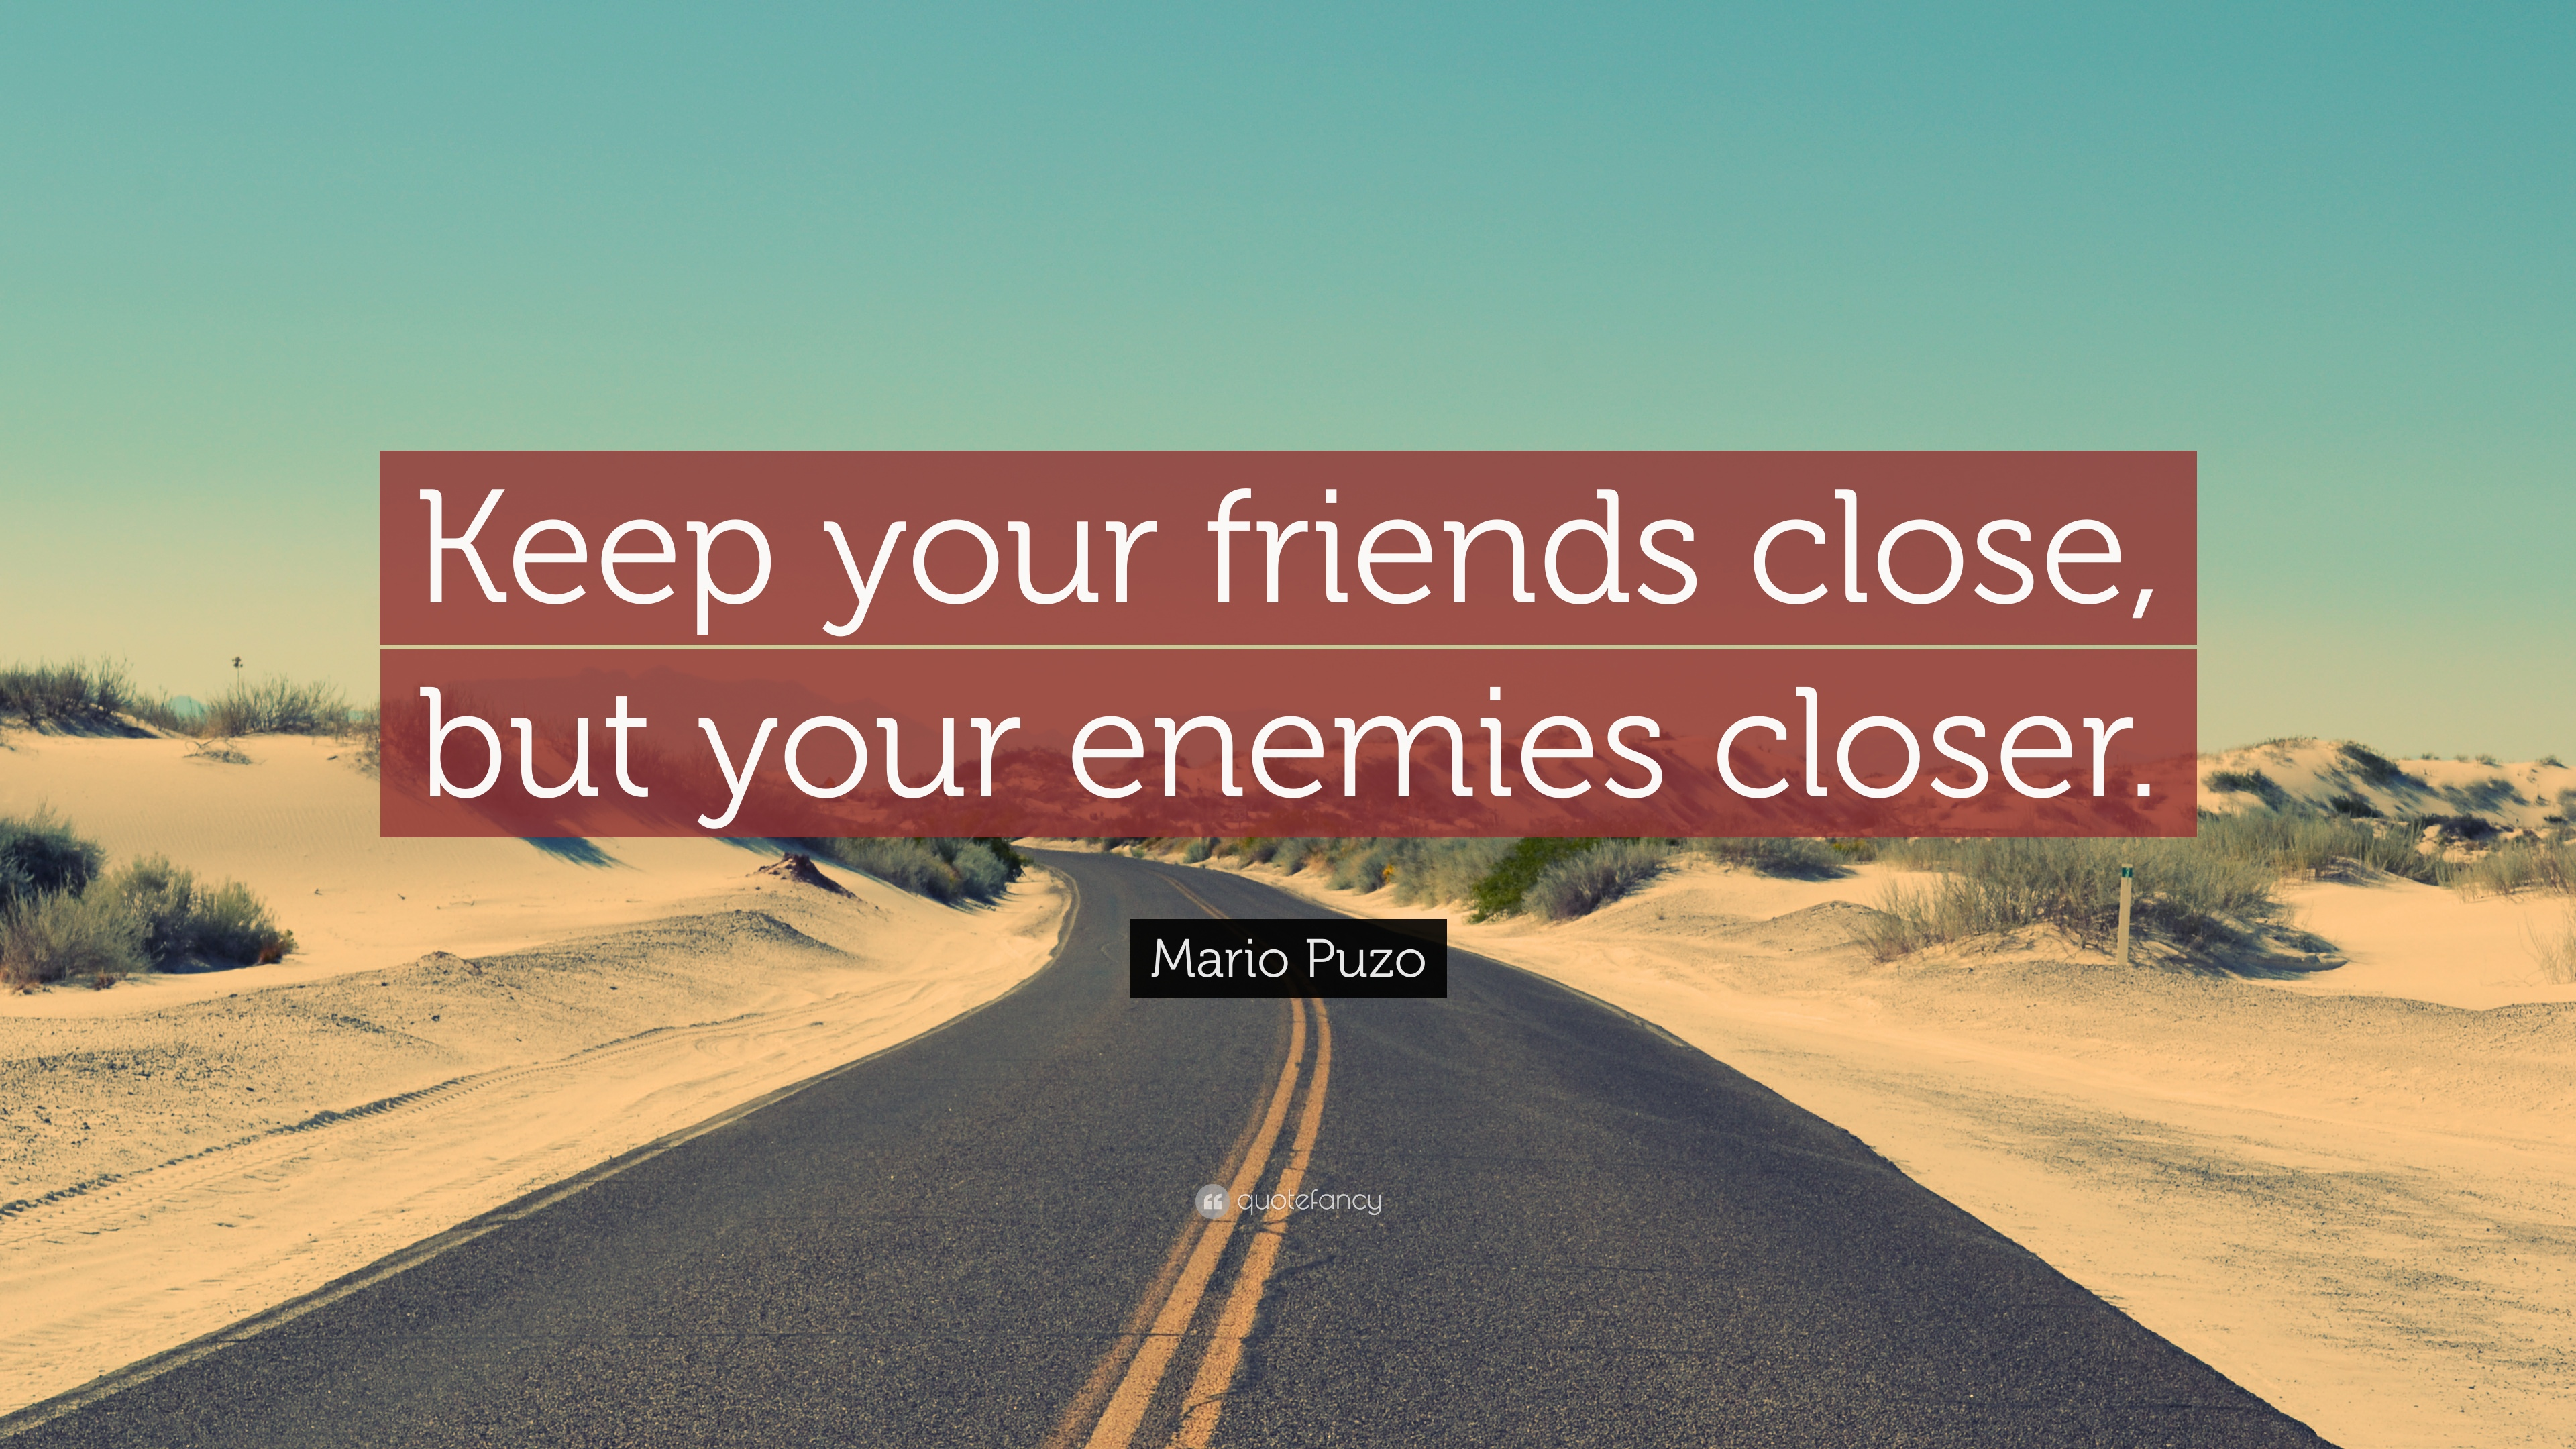 keeping your friends close and your enemies closersocrates life of scrutiny